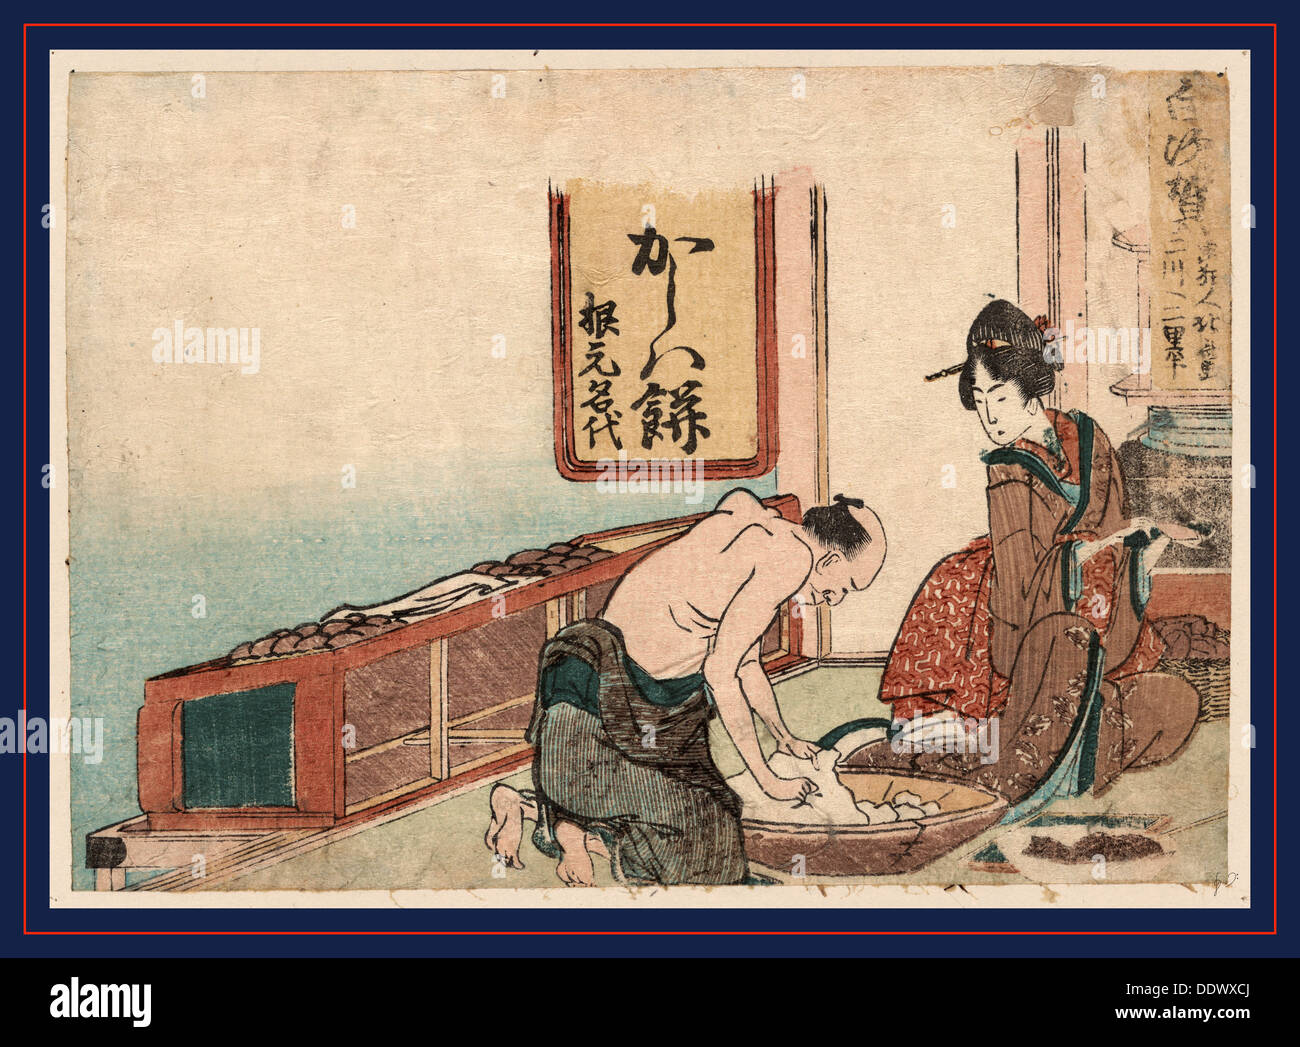 Shirasuka, Katsushika 1804., 1 print : woodcut, color ; 11.2 x 15.9 cm., Print shows a man and a woman in domestic setting with - Stock Image